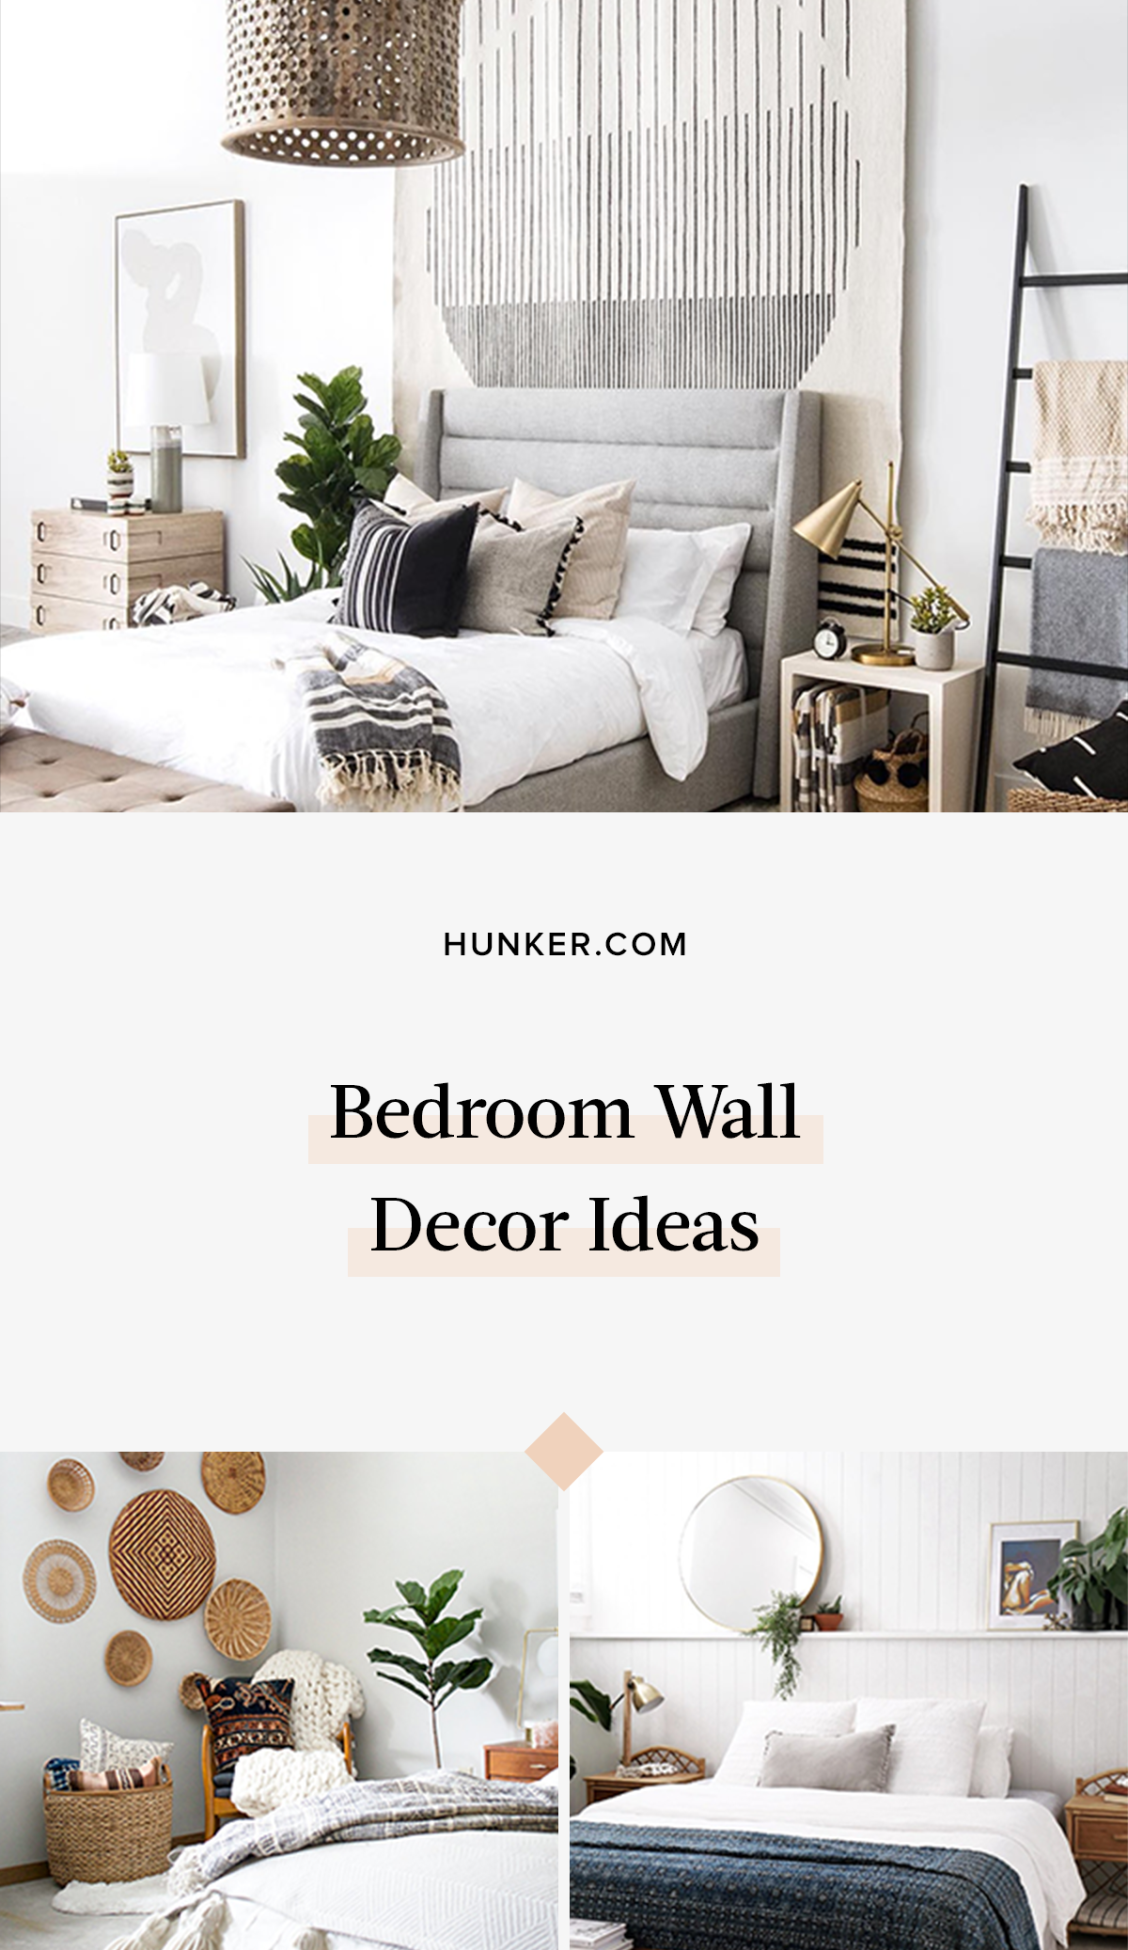 8 Clever Bedroom Wall Decor Ideas To Make The Most Of That Blank Space Hunker Wall Decor Bedroom Above Bed Decor Bedroom Wall Decor Above Bed